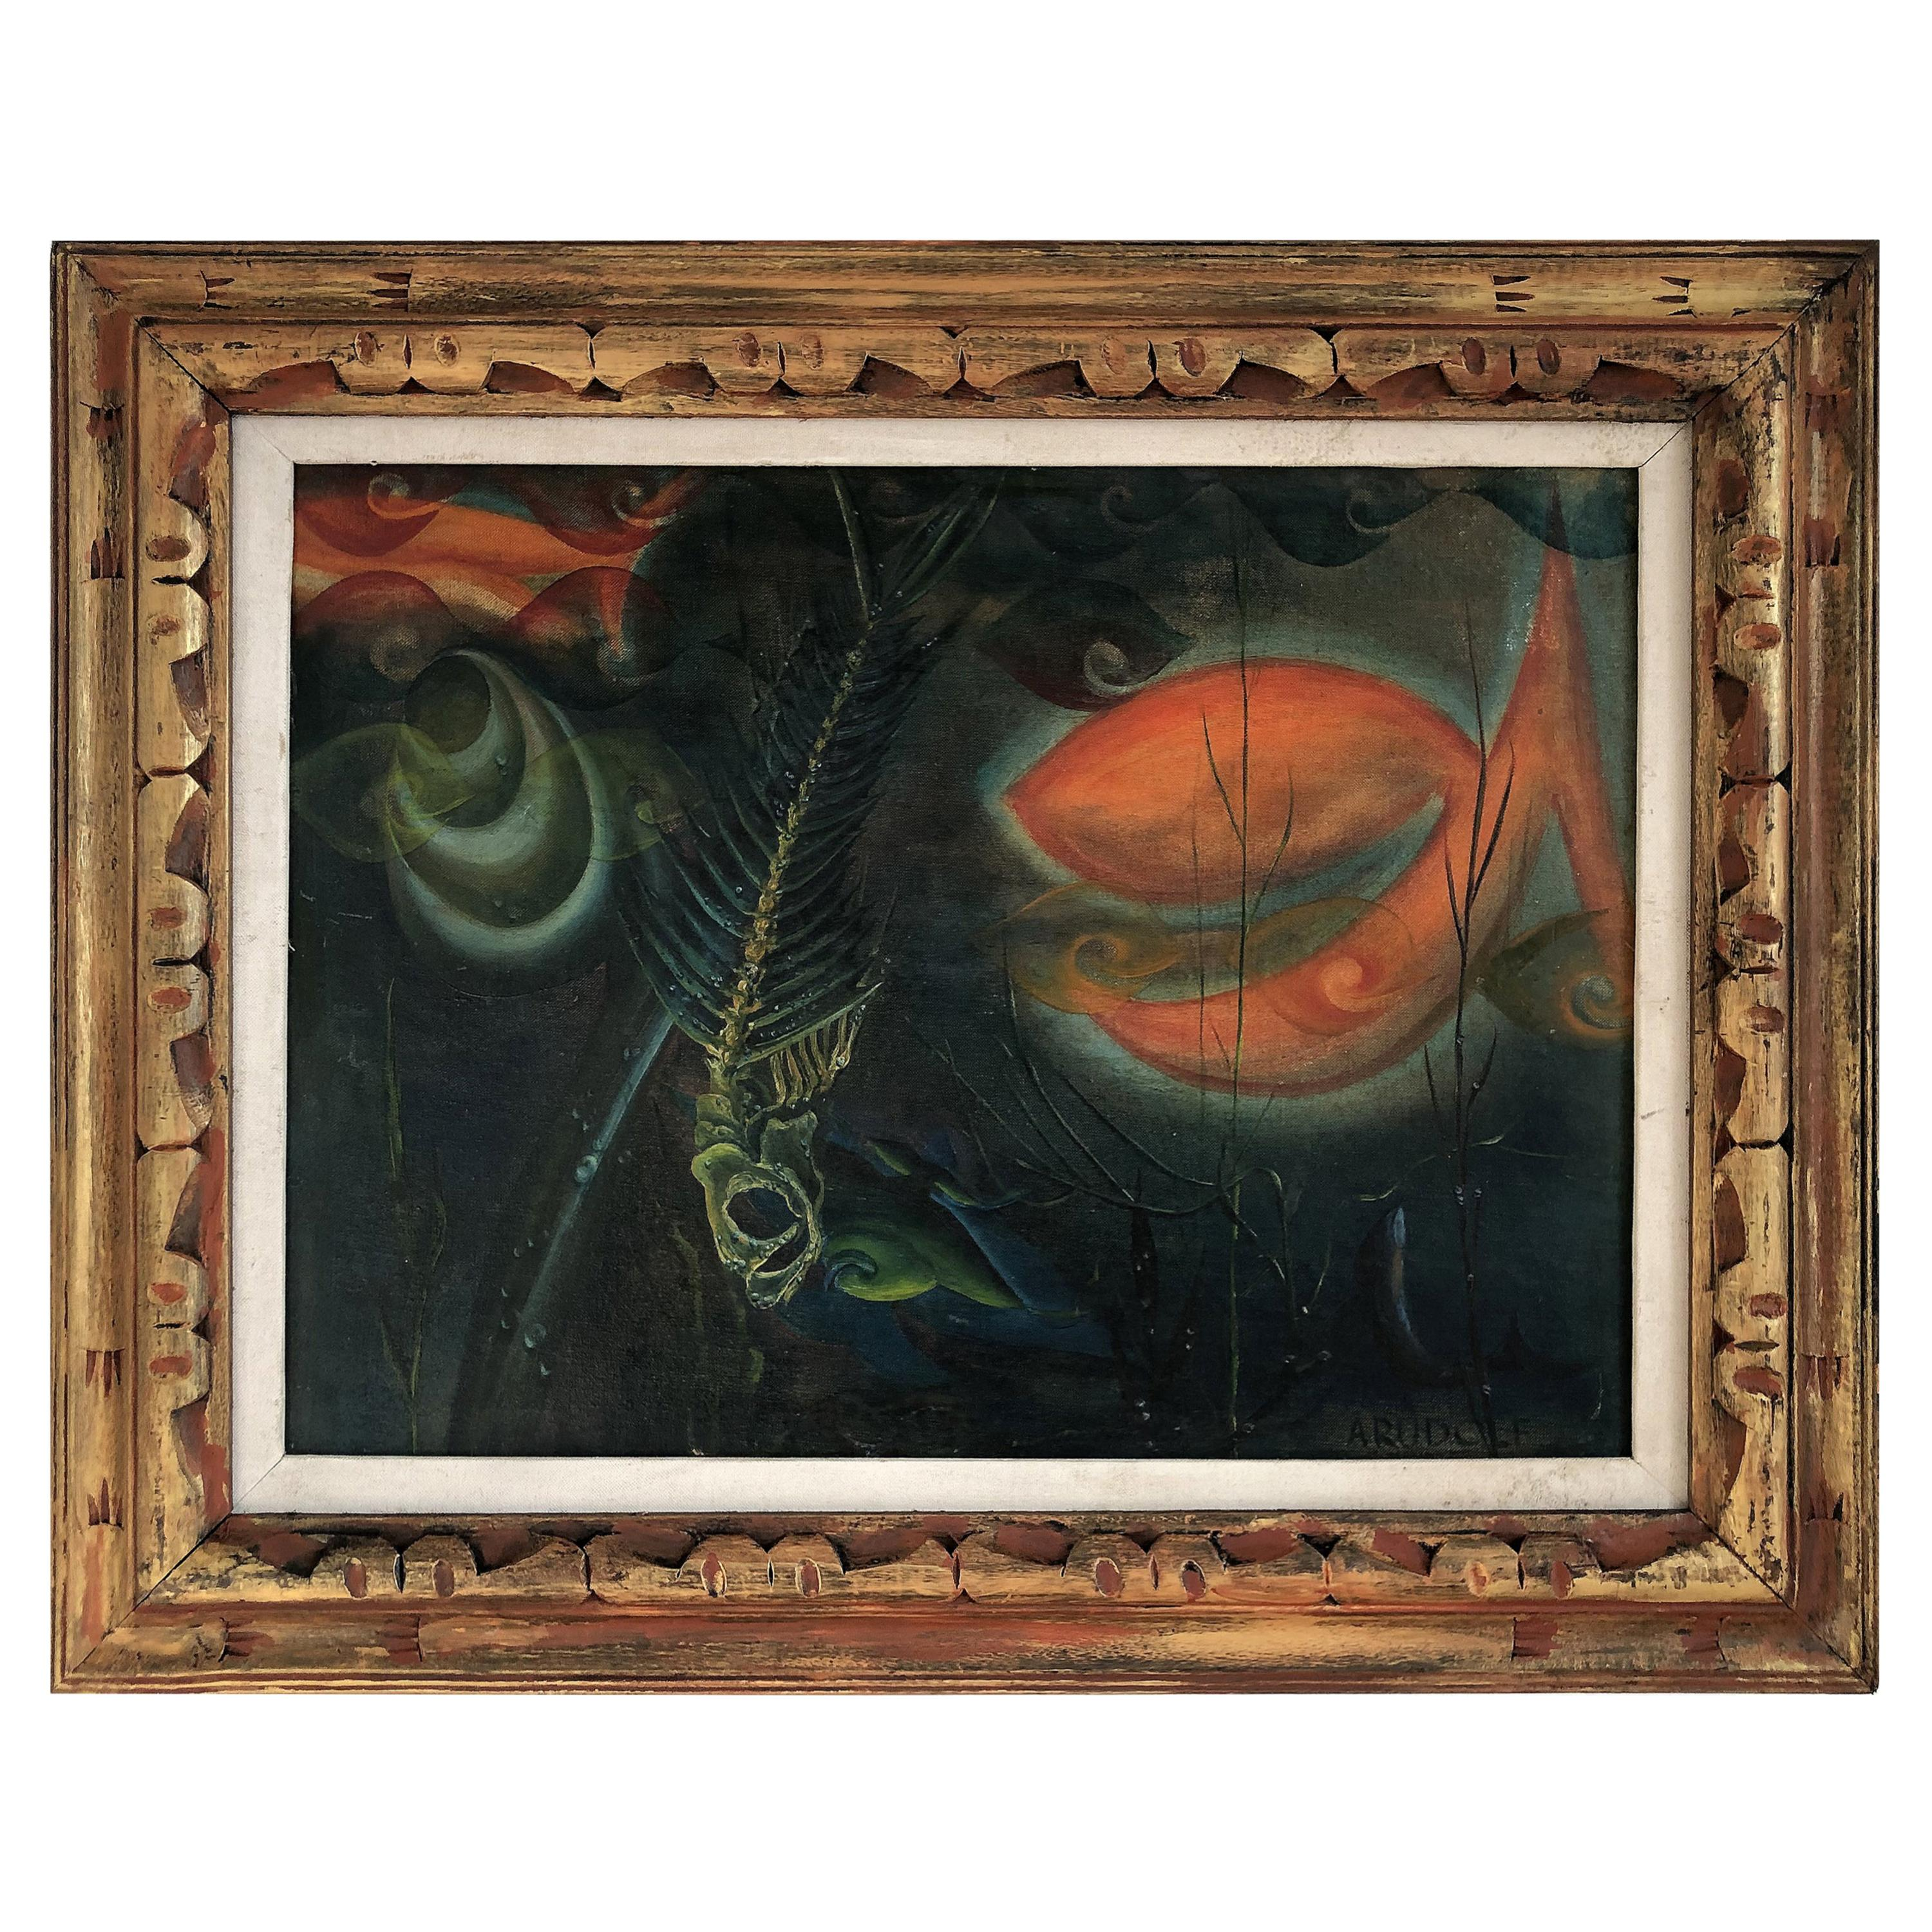 1950s Midcentury Surrealist Abstract Oil Painting, Signed